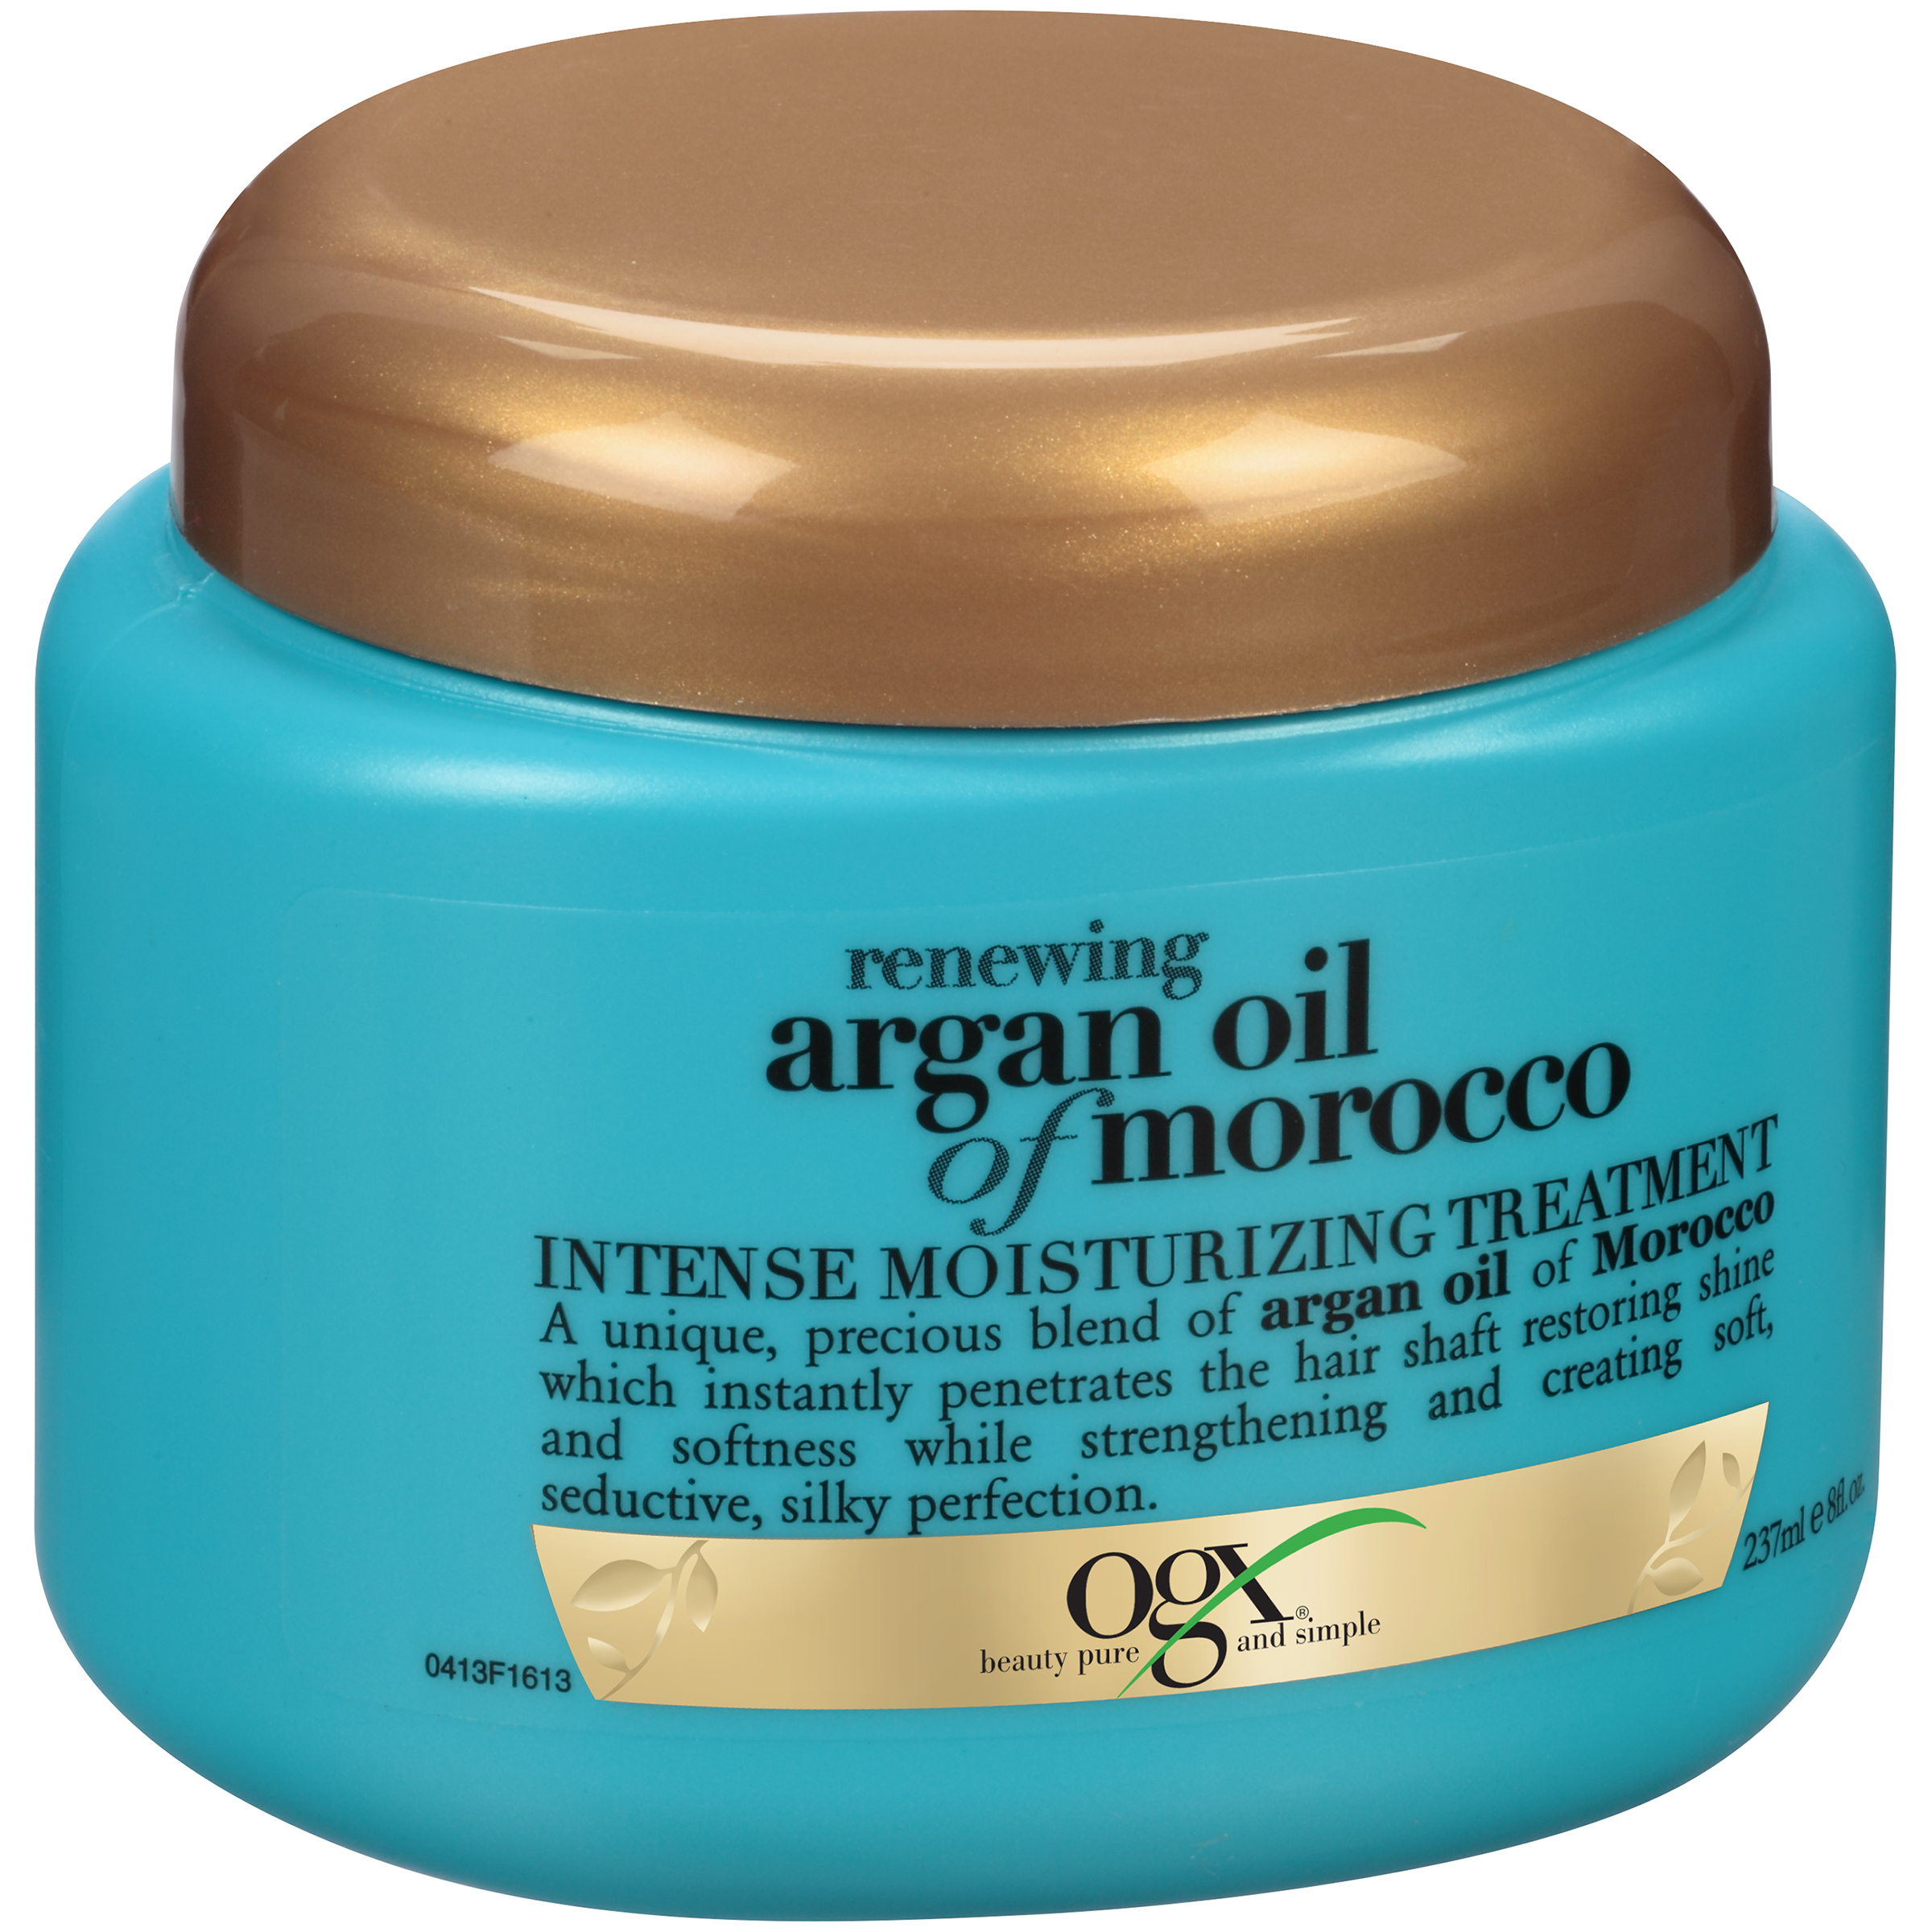 OGX® Renewing Argan Oil of Morocco Intense Moisturizing Treatment 8 fl. oz. Jar